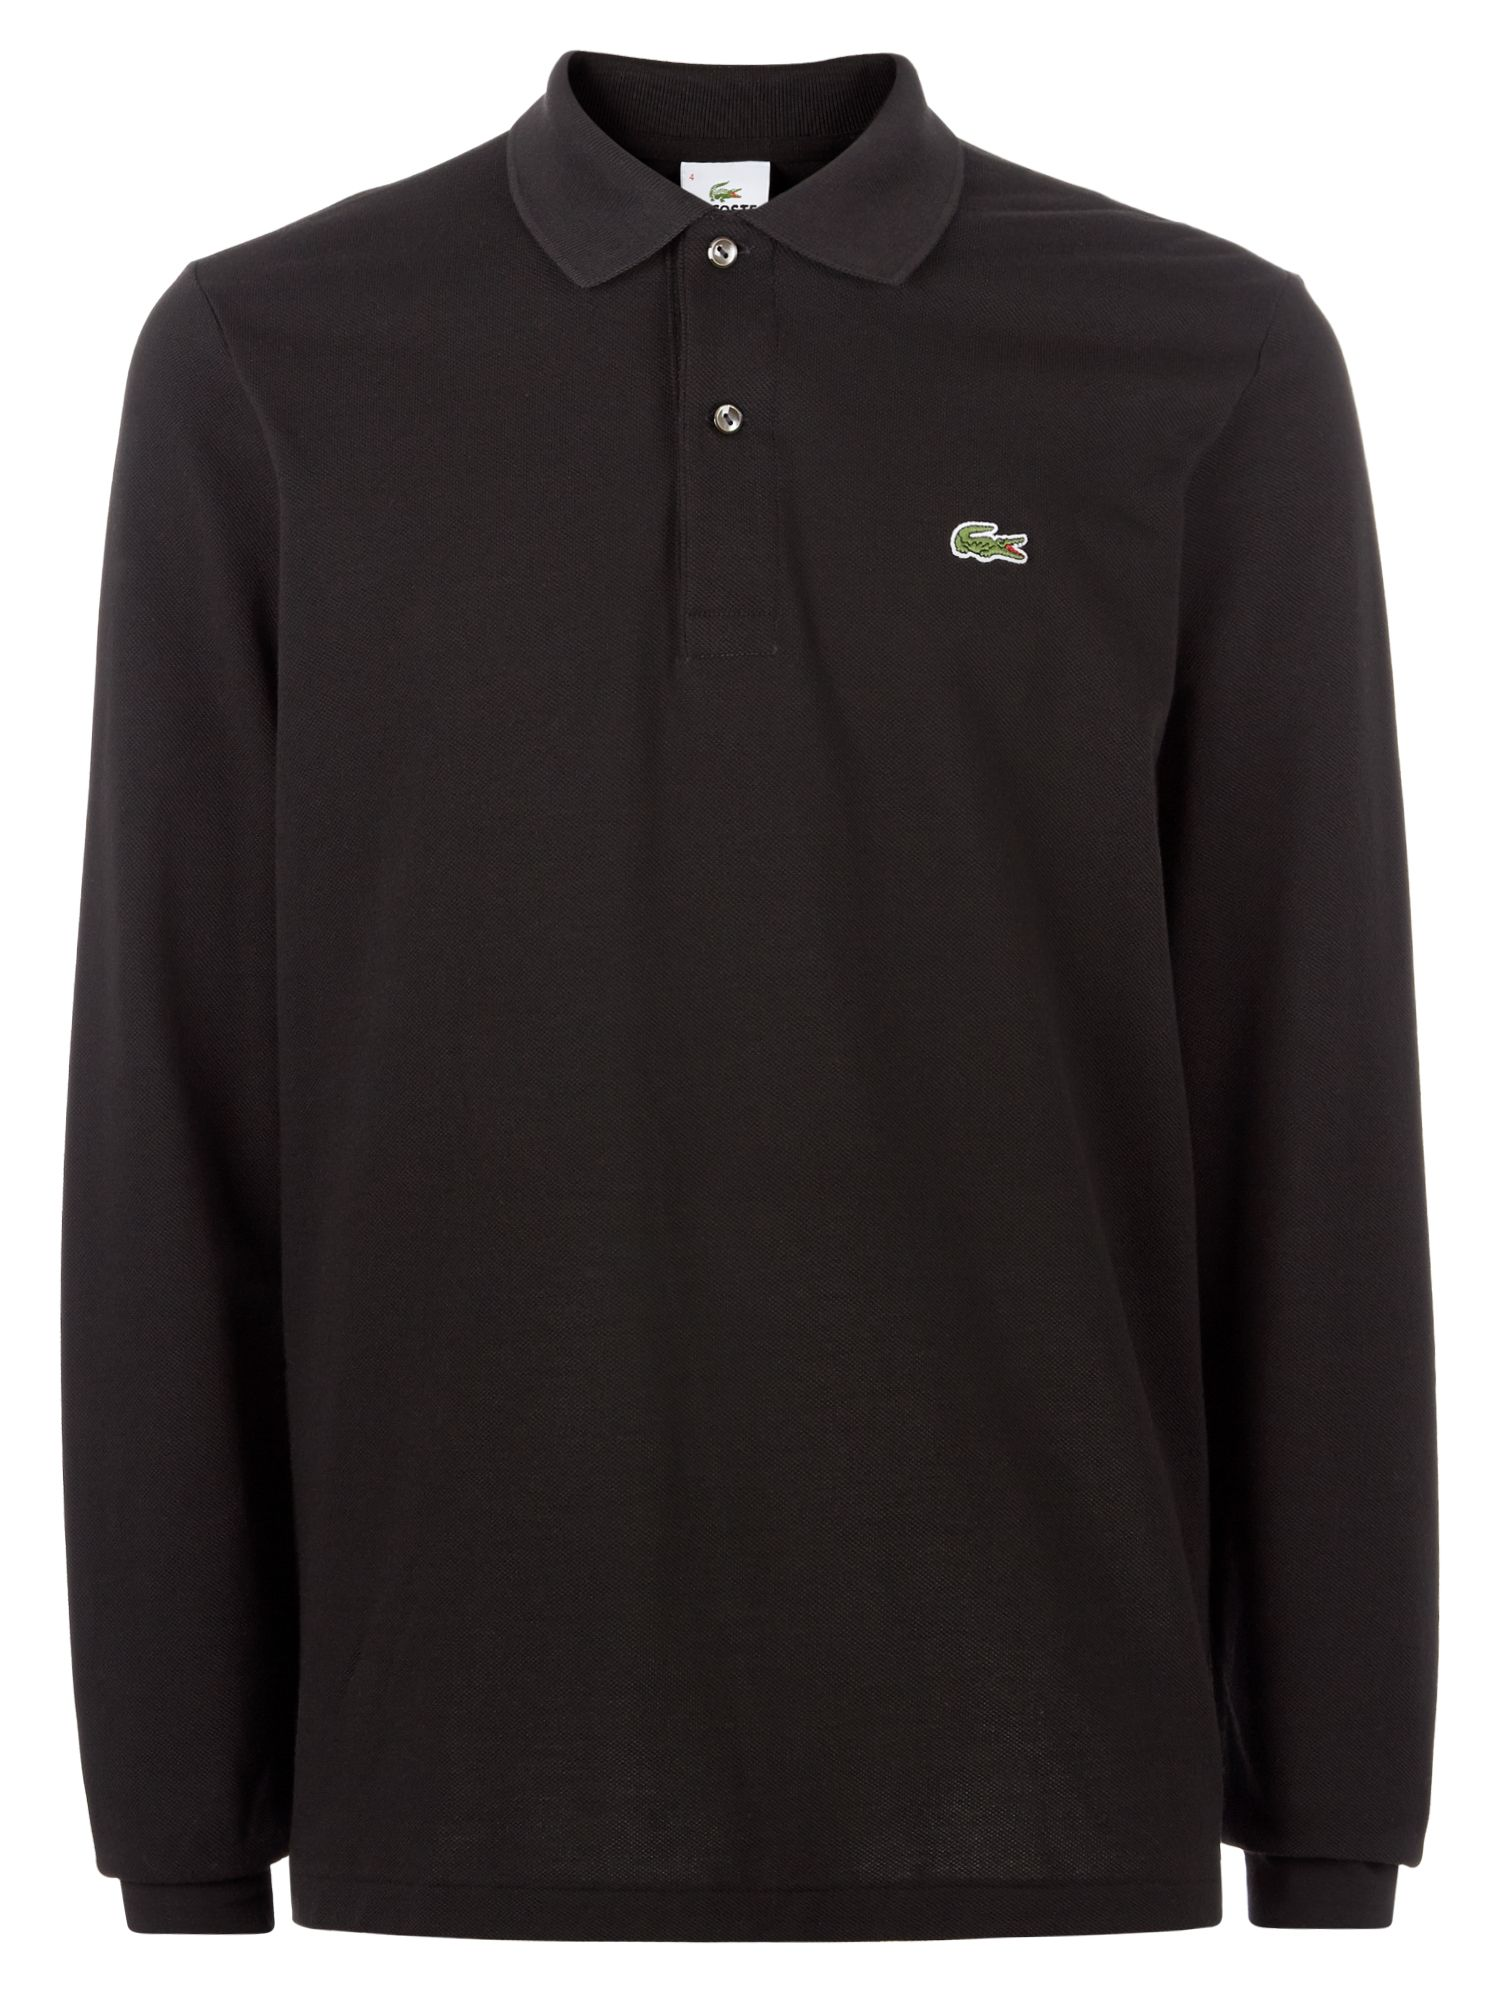 Men's Lacoste Lacoste Long Sleeve L.12.12 Polo, Black